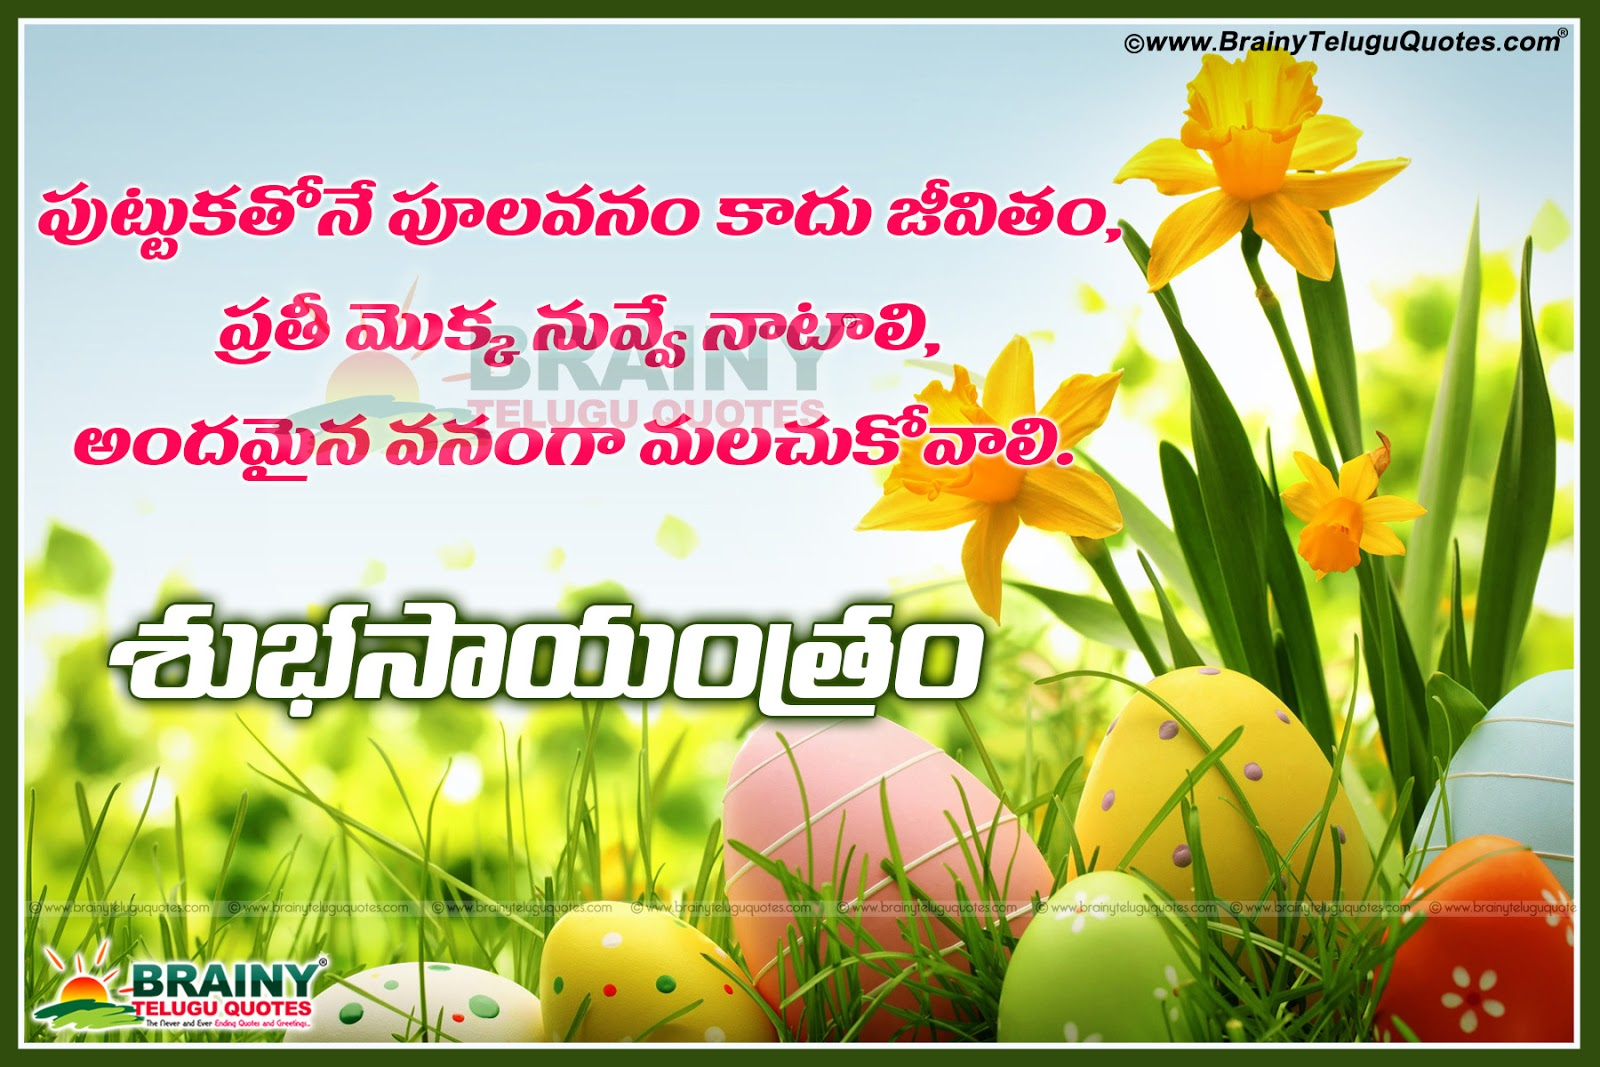 good evening inspirational quotes in telugu with beautiful